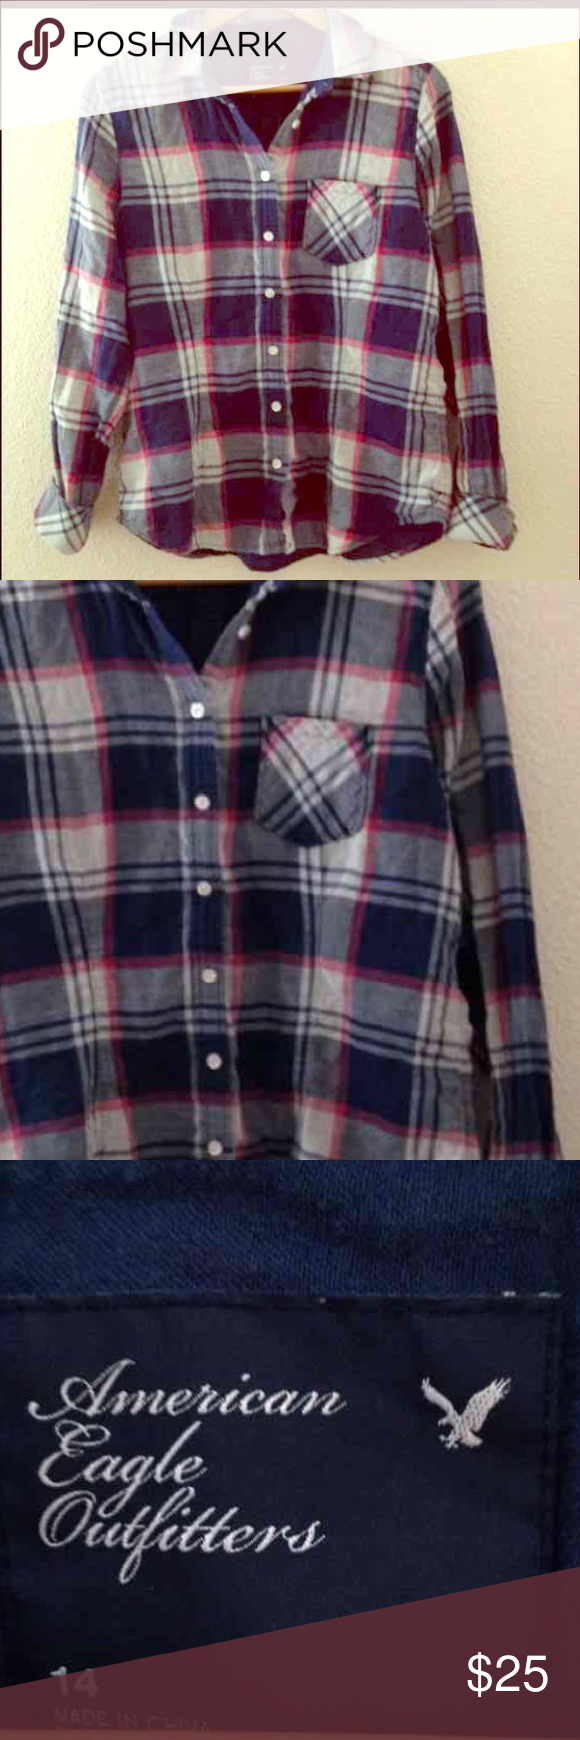 Off white red flannel shirt  AMERICAN EAGLE OUTFITTERS Plaid Flannel Shirt  Plaid flannel